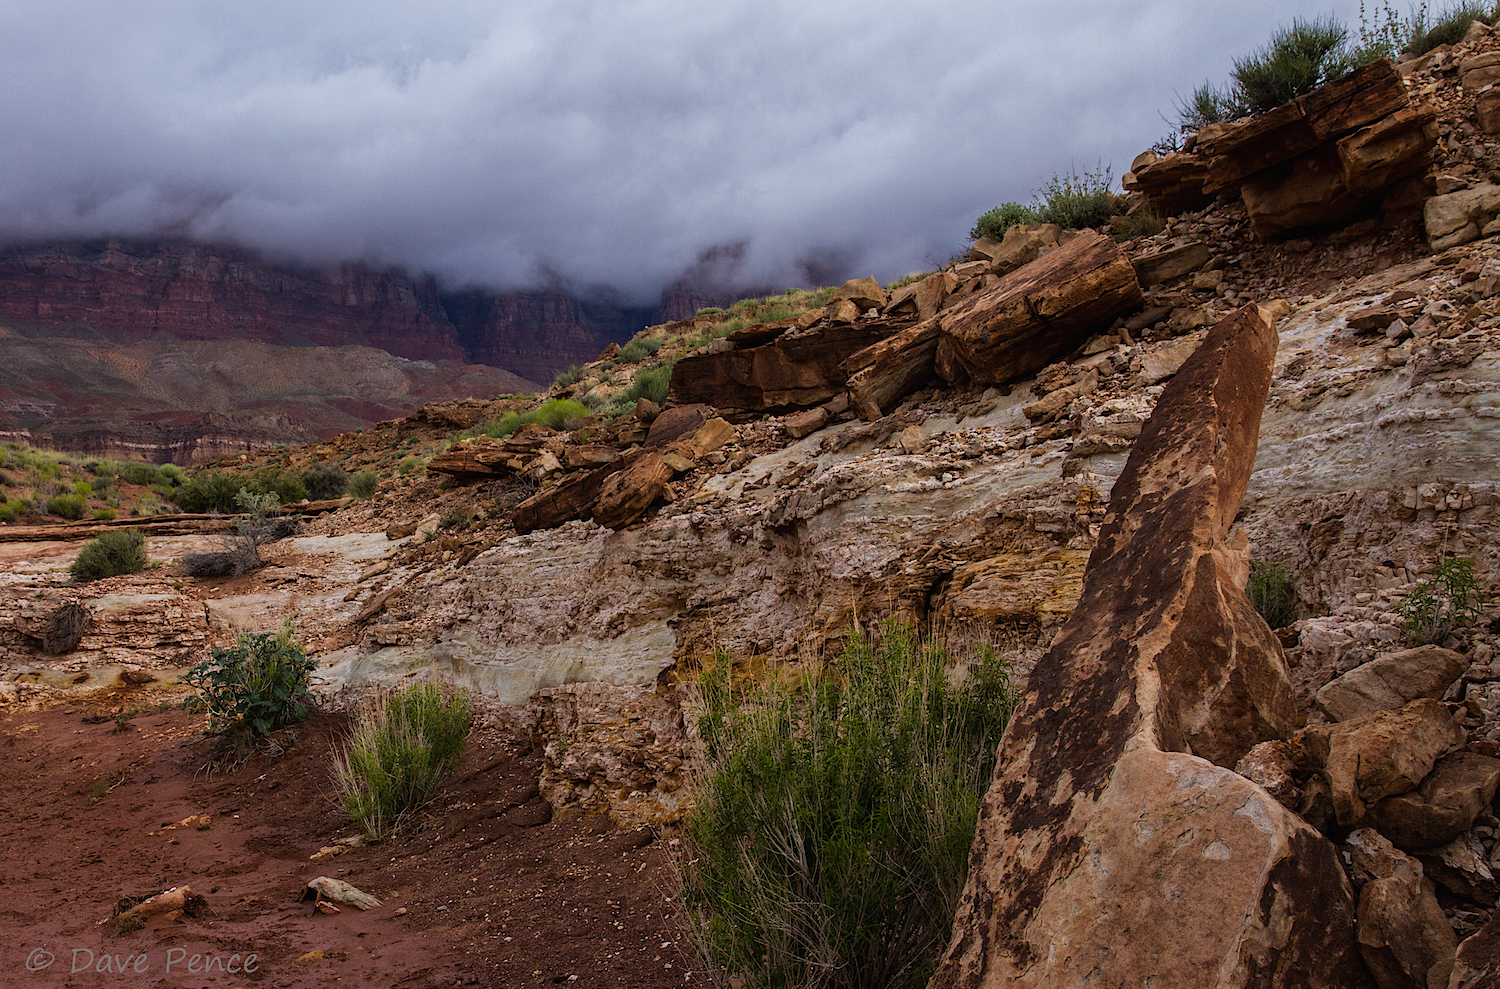 Dave hiked Soap Creek, very near Cliff Dwellers Lodge, waiting for me to arrive. Wowza!